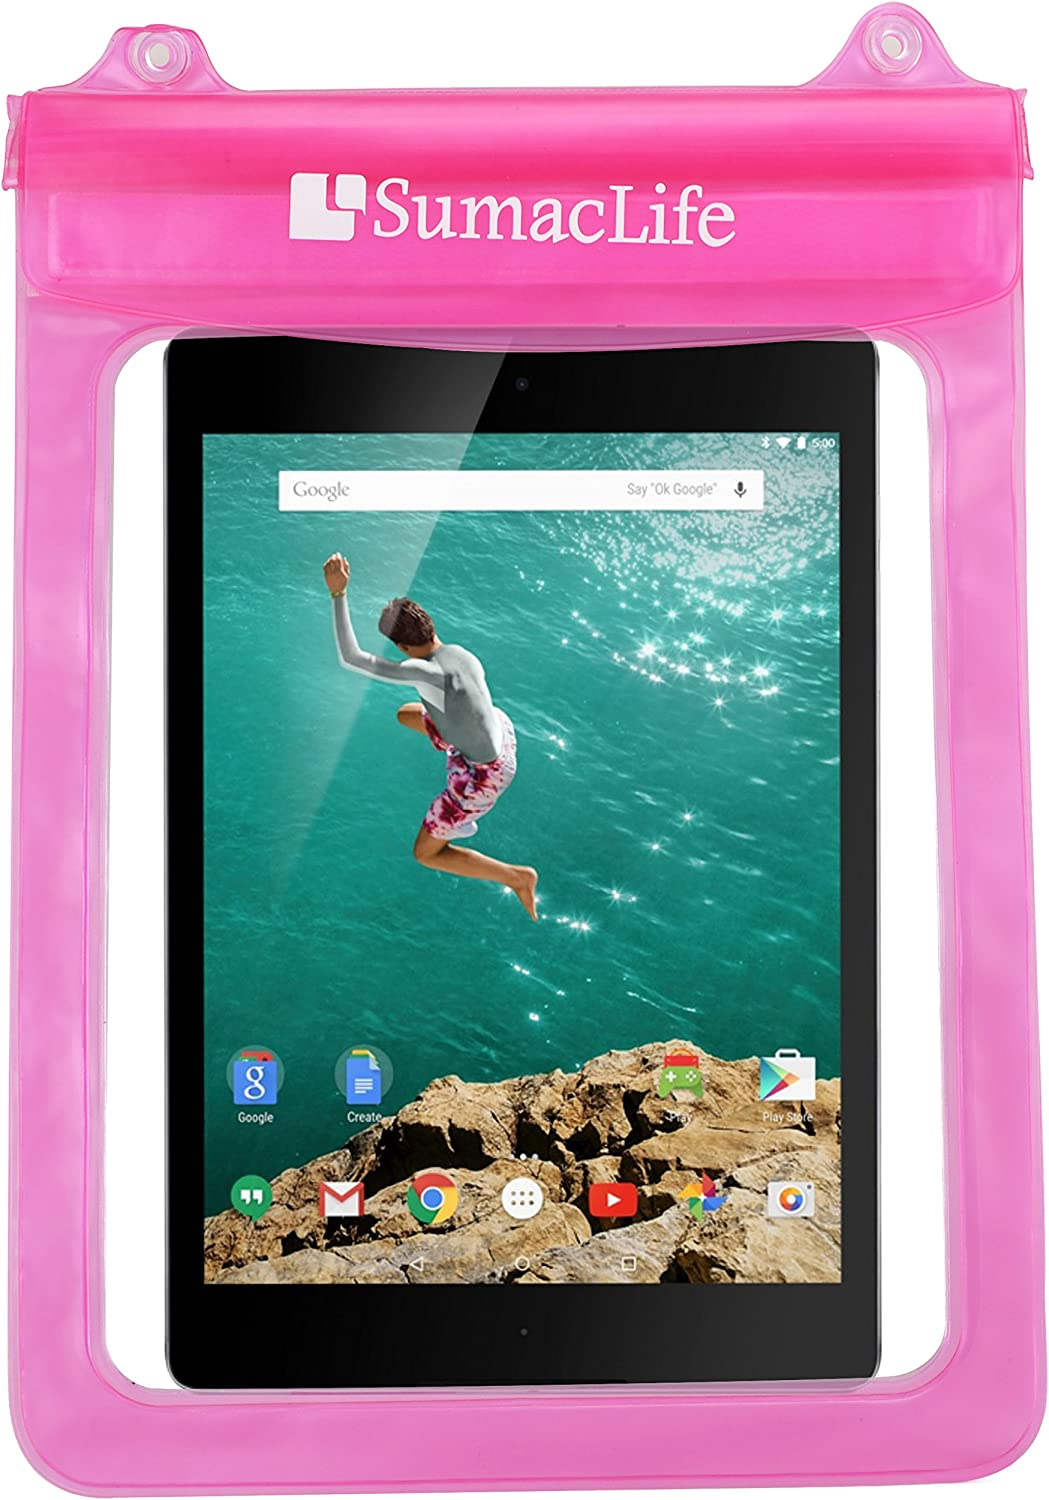 SumacLife Waterproof Pouch Bag Case for Dell Venue 11 Pro 4th Gen 10.8 inch, Microsoft Surface RT 2 3, Lenovo Miix 2 11 inch 10.1'', A10, Thinkpad 10, Yoga Tablet 10 HD Plus, Yoga Tablet(Pink)